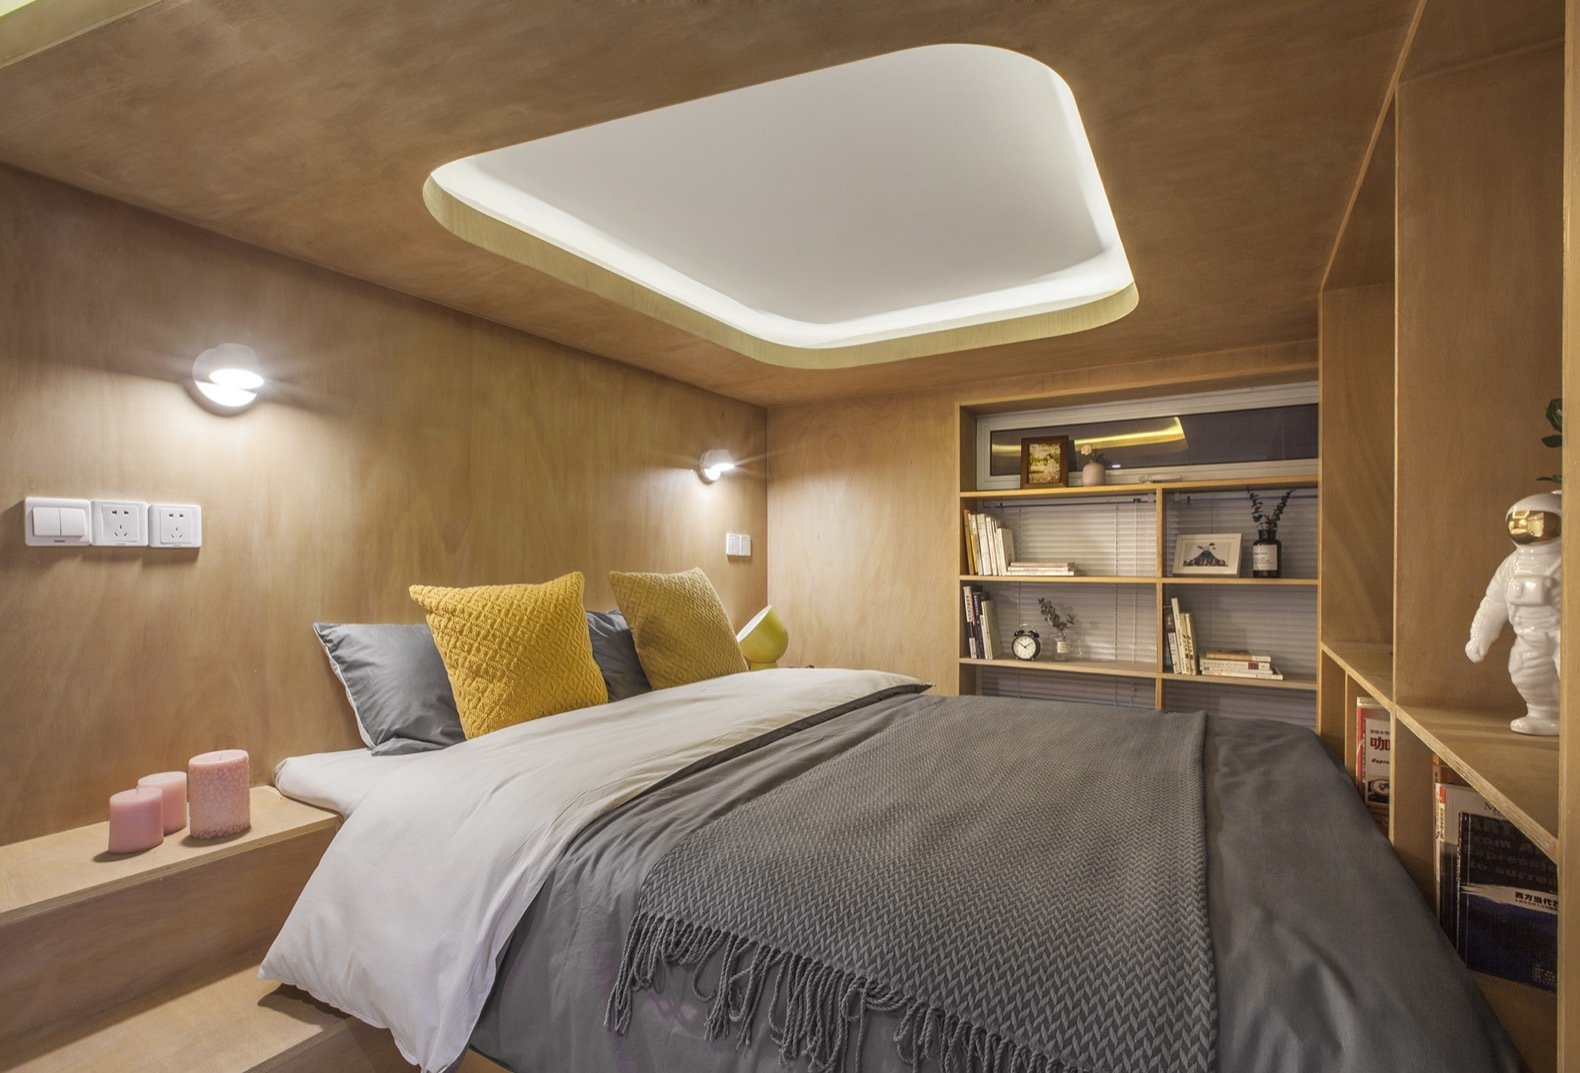 Bedroom with wall sconce light on each side of bed and ceiling accent cove light